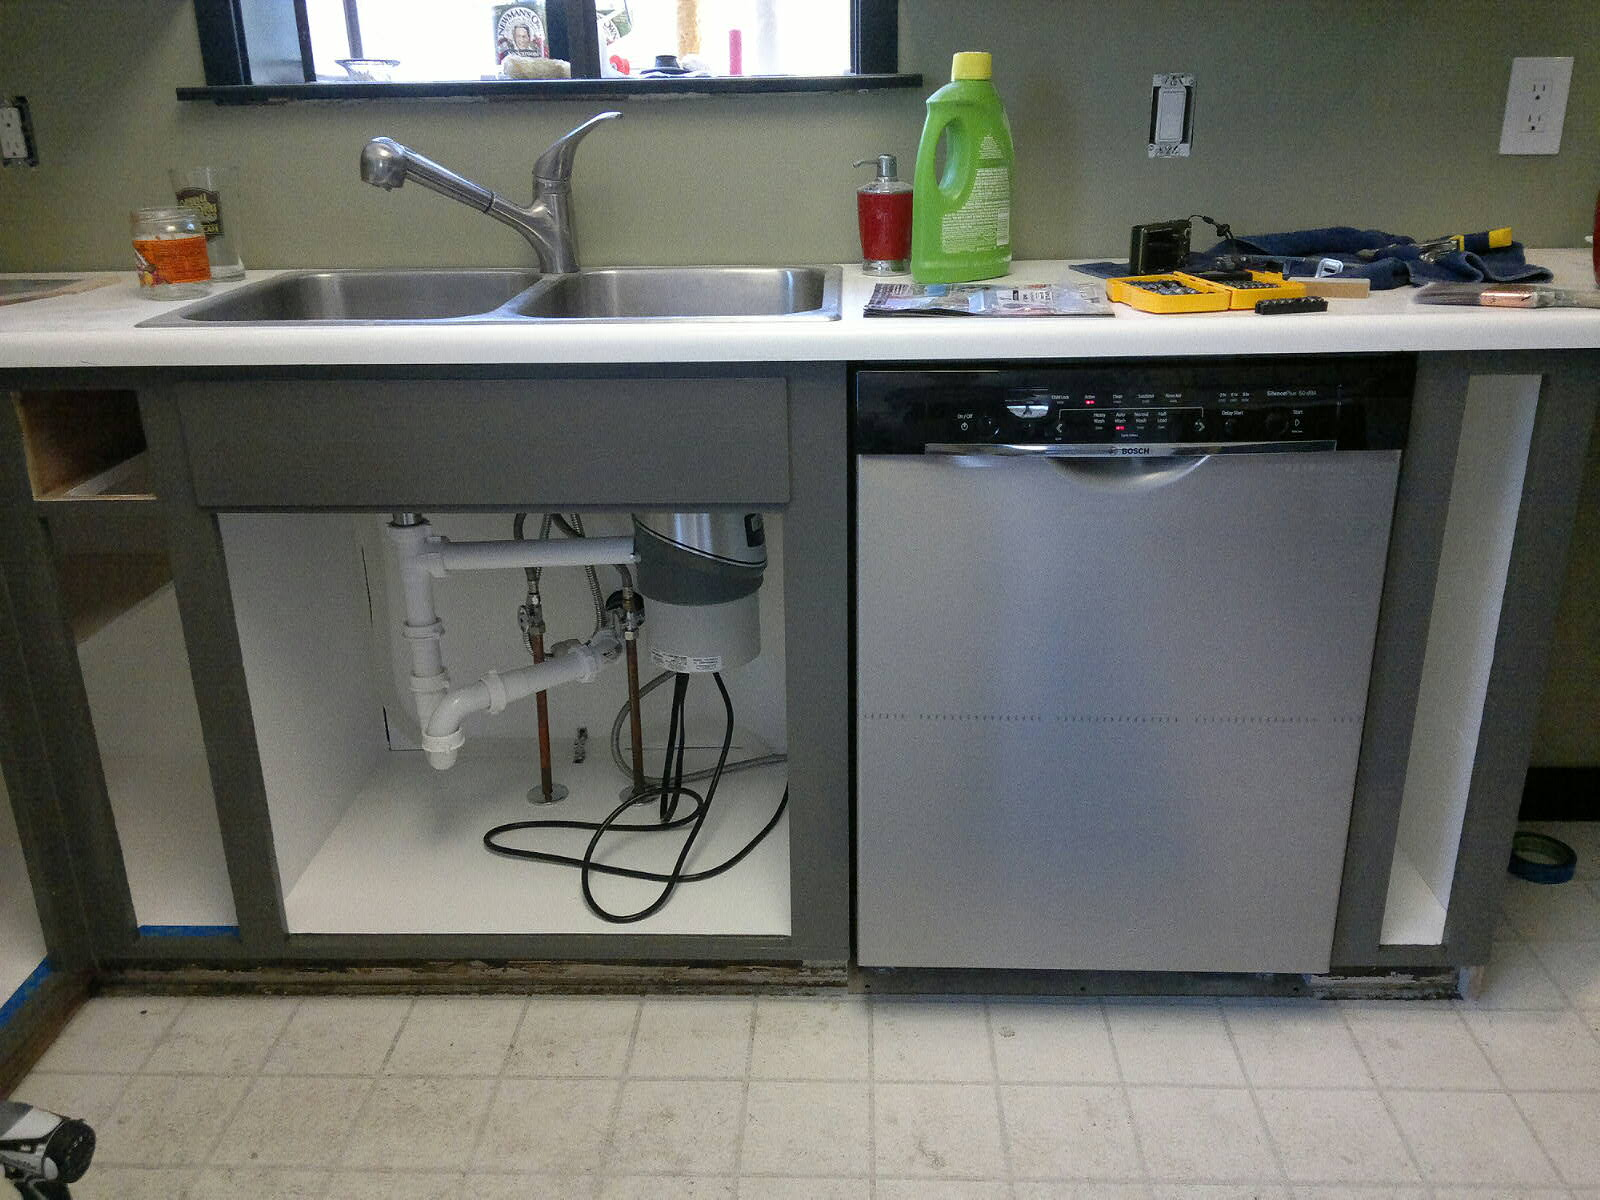 Attrayant Installing A Full Size Dishwasher In Old Shallow Cabinets